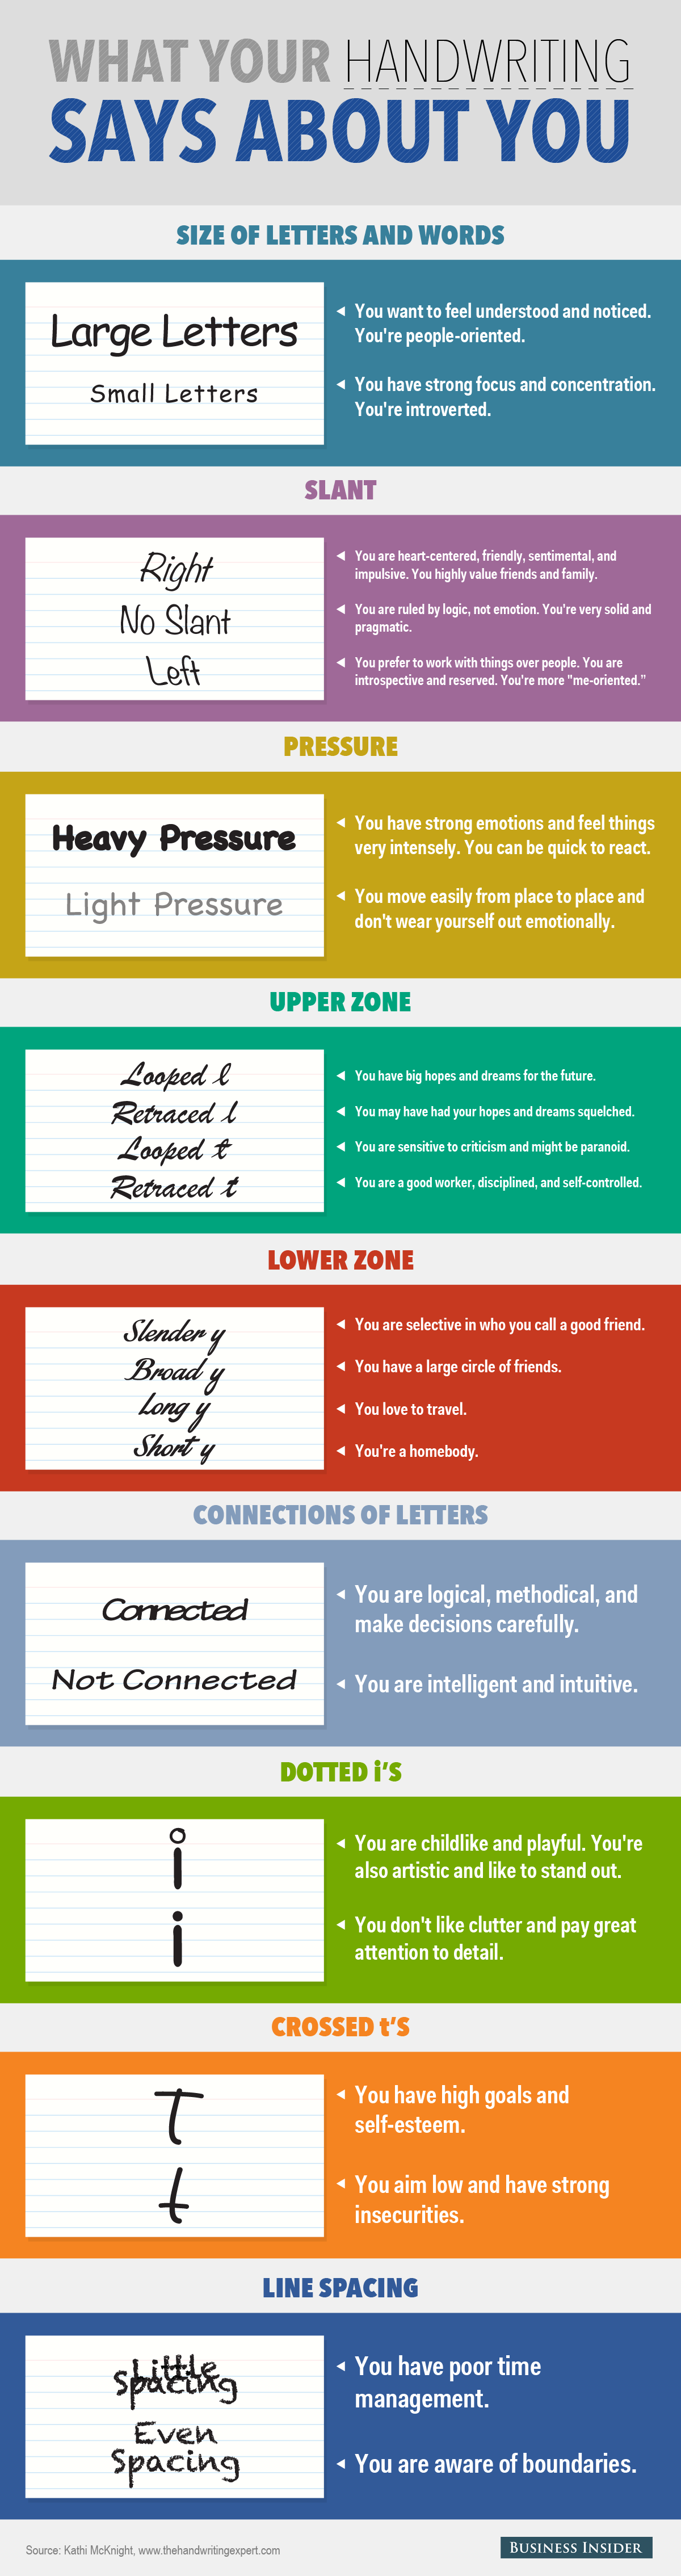 handwriting infographic_03